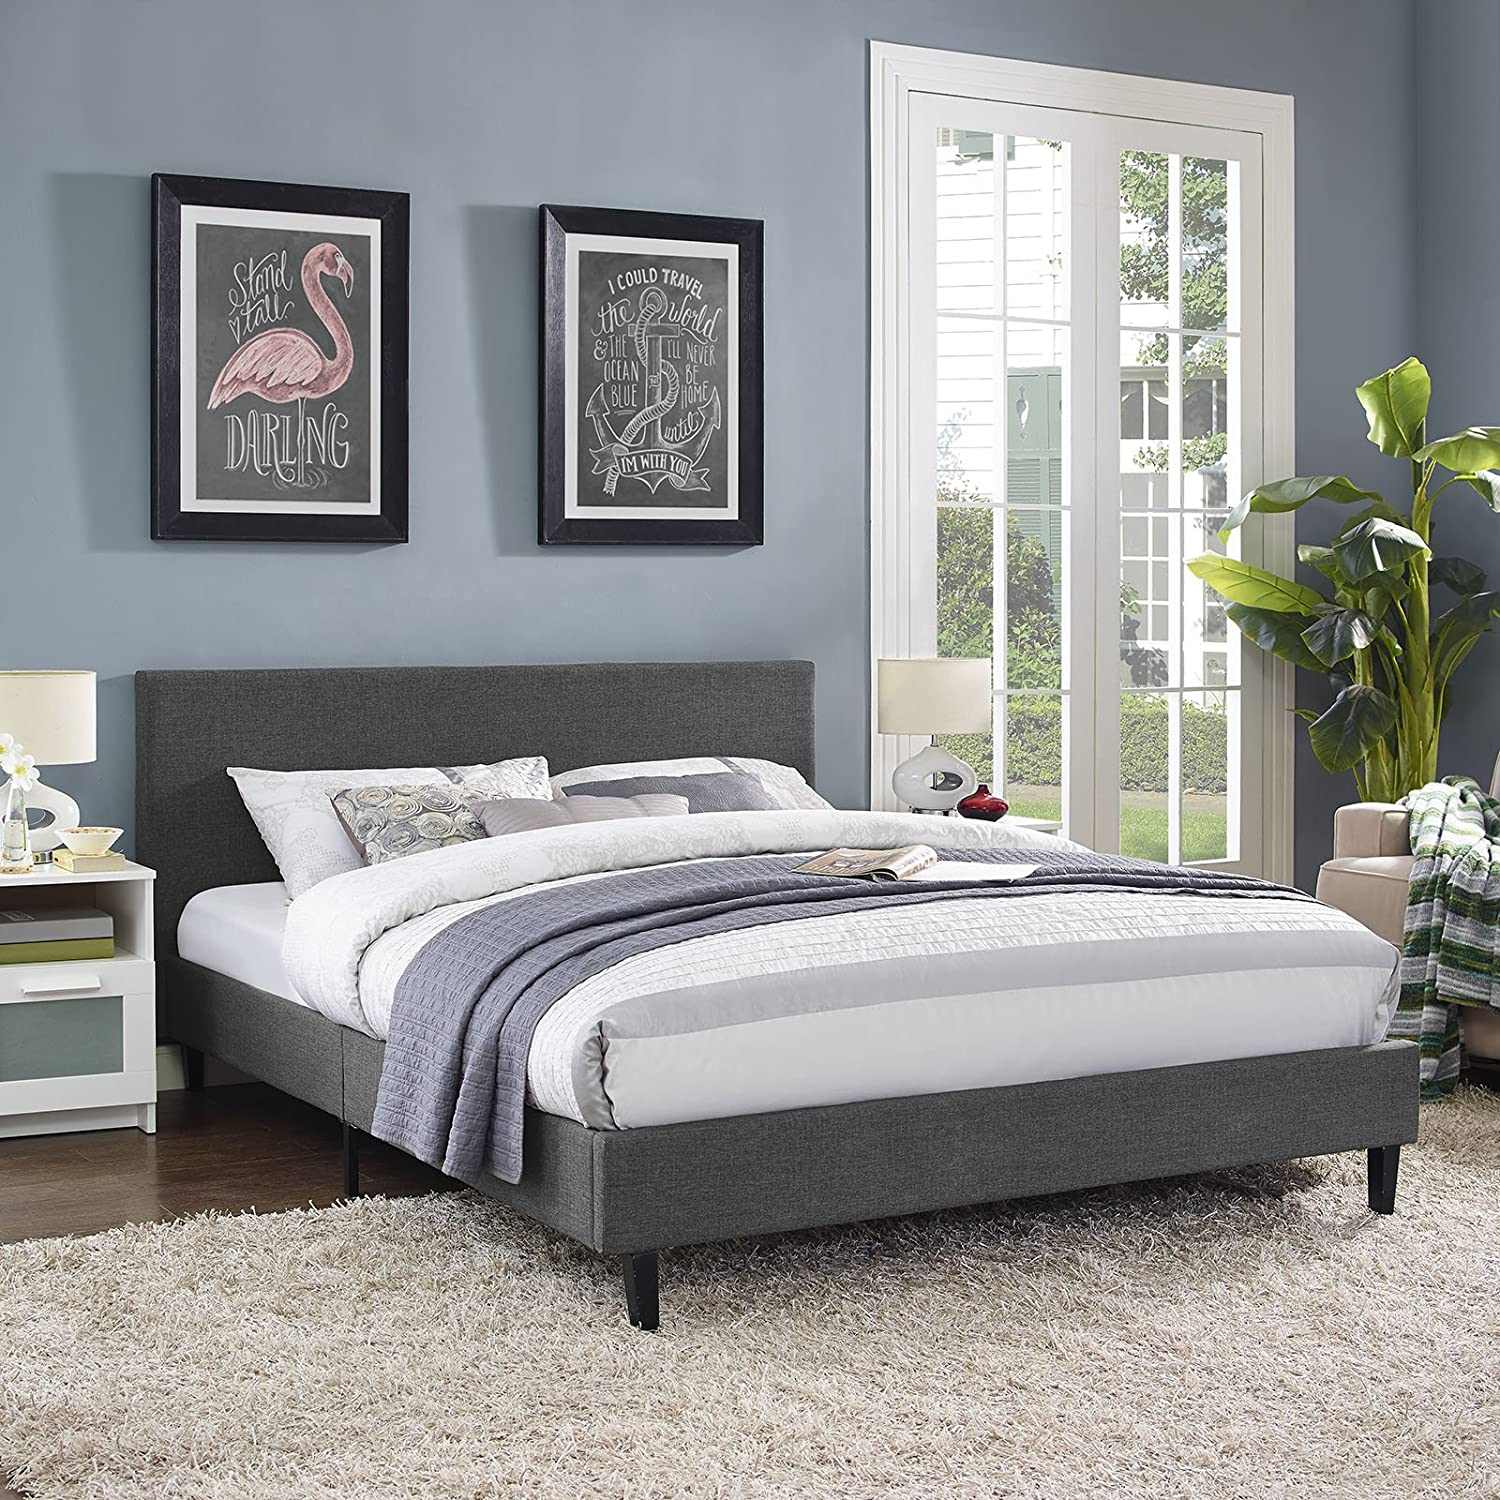 amazoncom modway mod5420gry anya bed frame queen gray kitchen u0026 dining